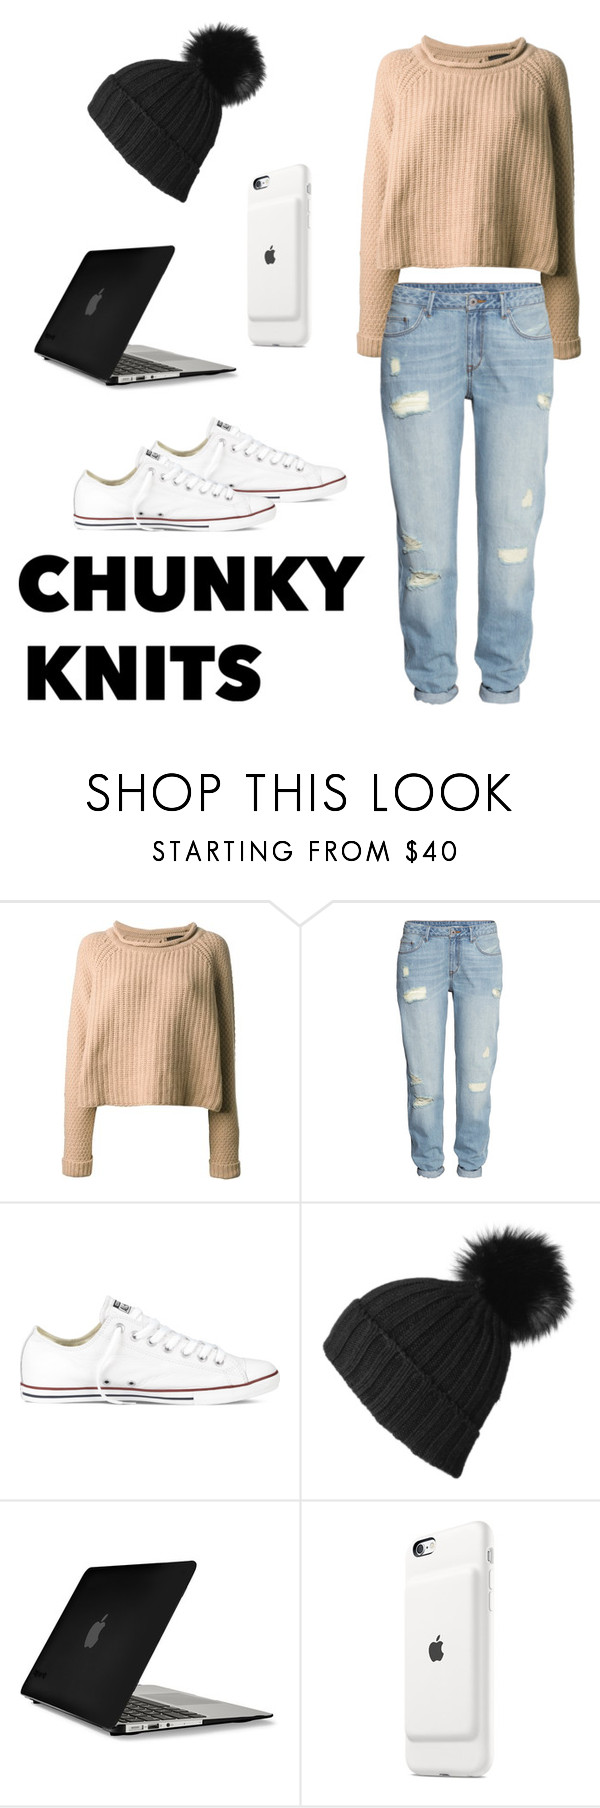 """""""#019"""" by taymartin ❤ liked on Polyvore featuring Jo No Fui, H&M, Converse, Black and Speck"""